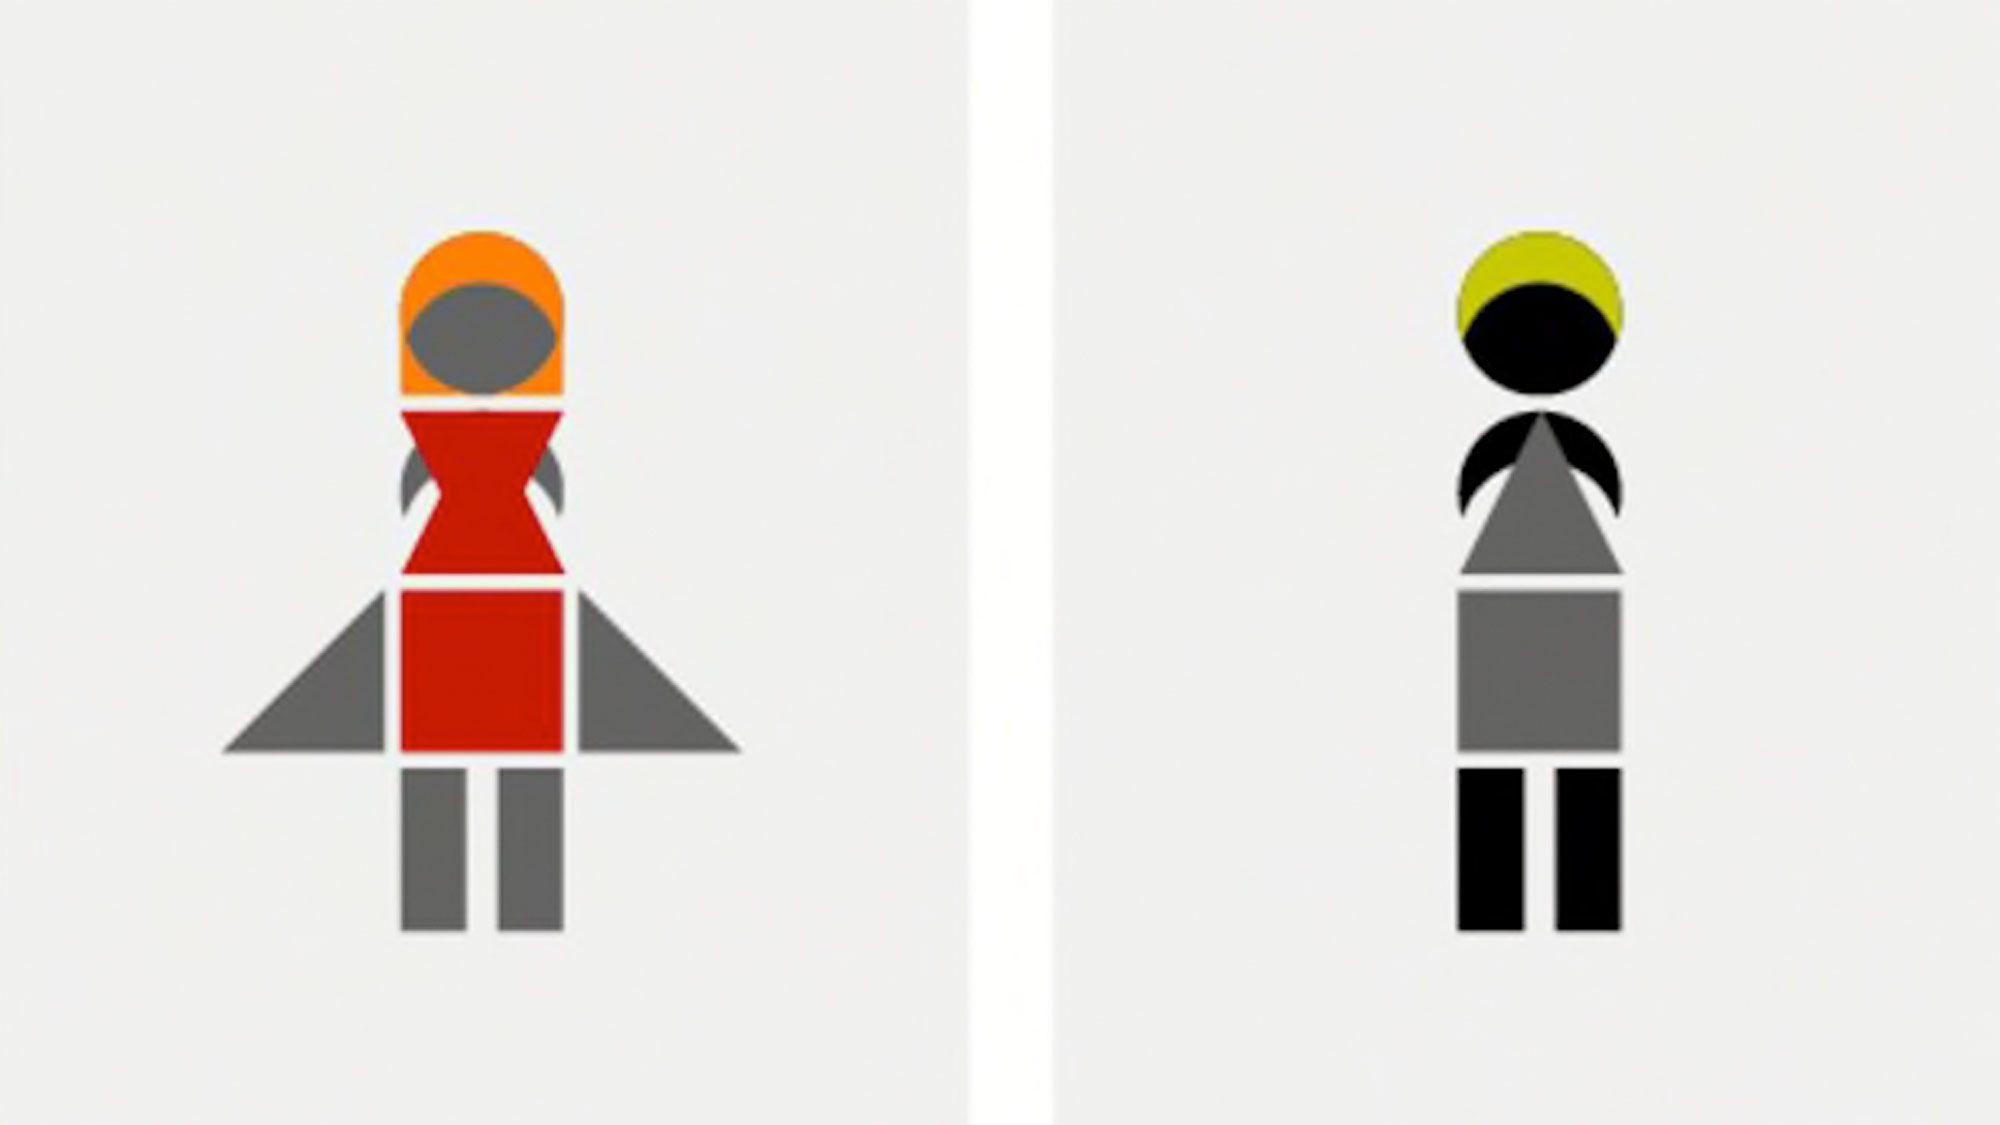 Bathroom signs made from coloured geometric shapes